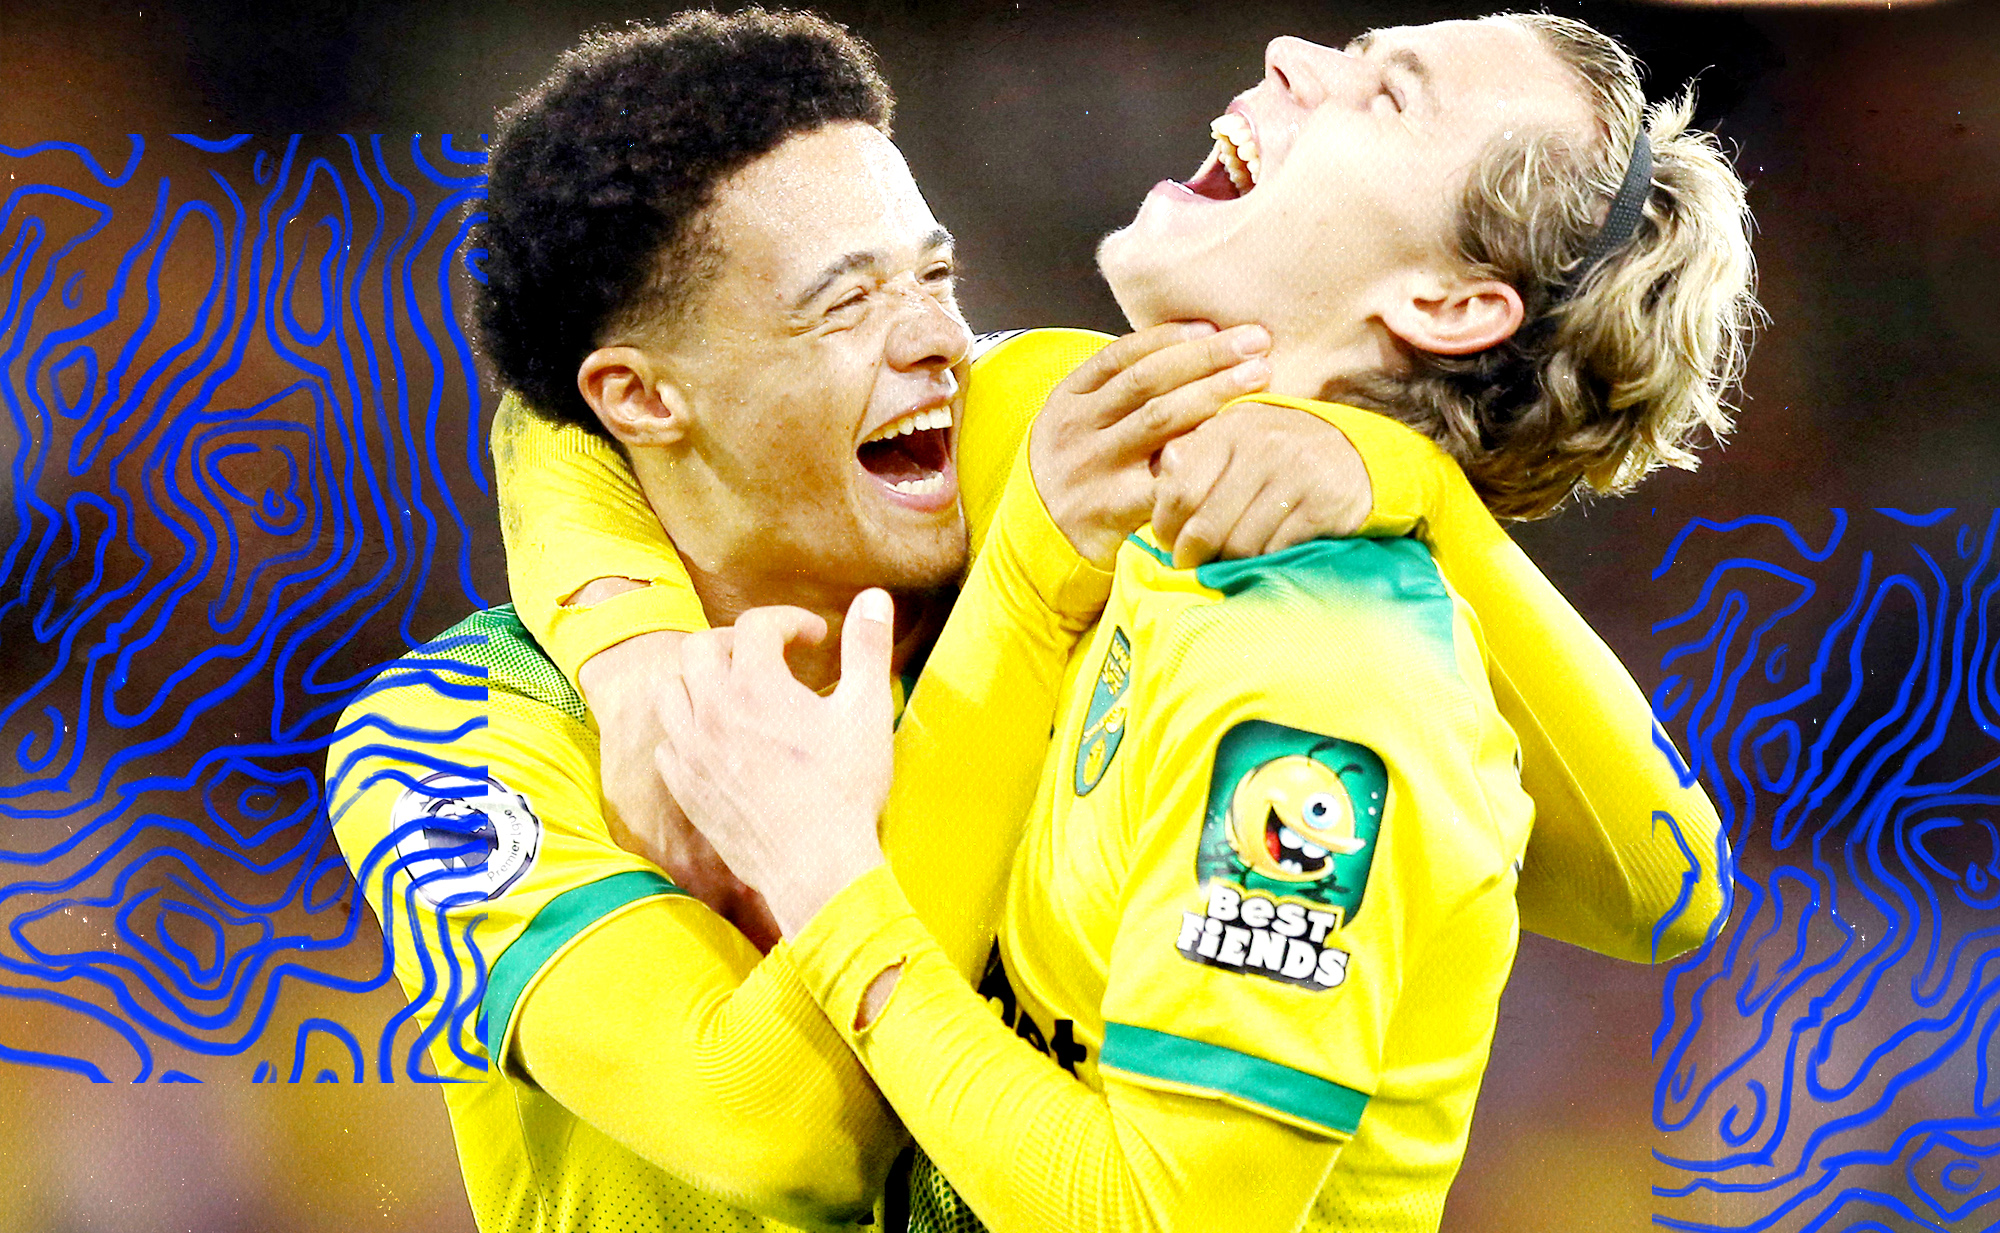 Norwich showed what's possible for Premier League underdogs who want to play daring soccer